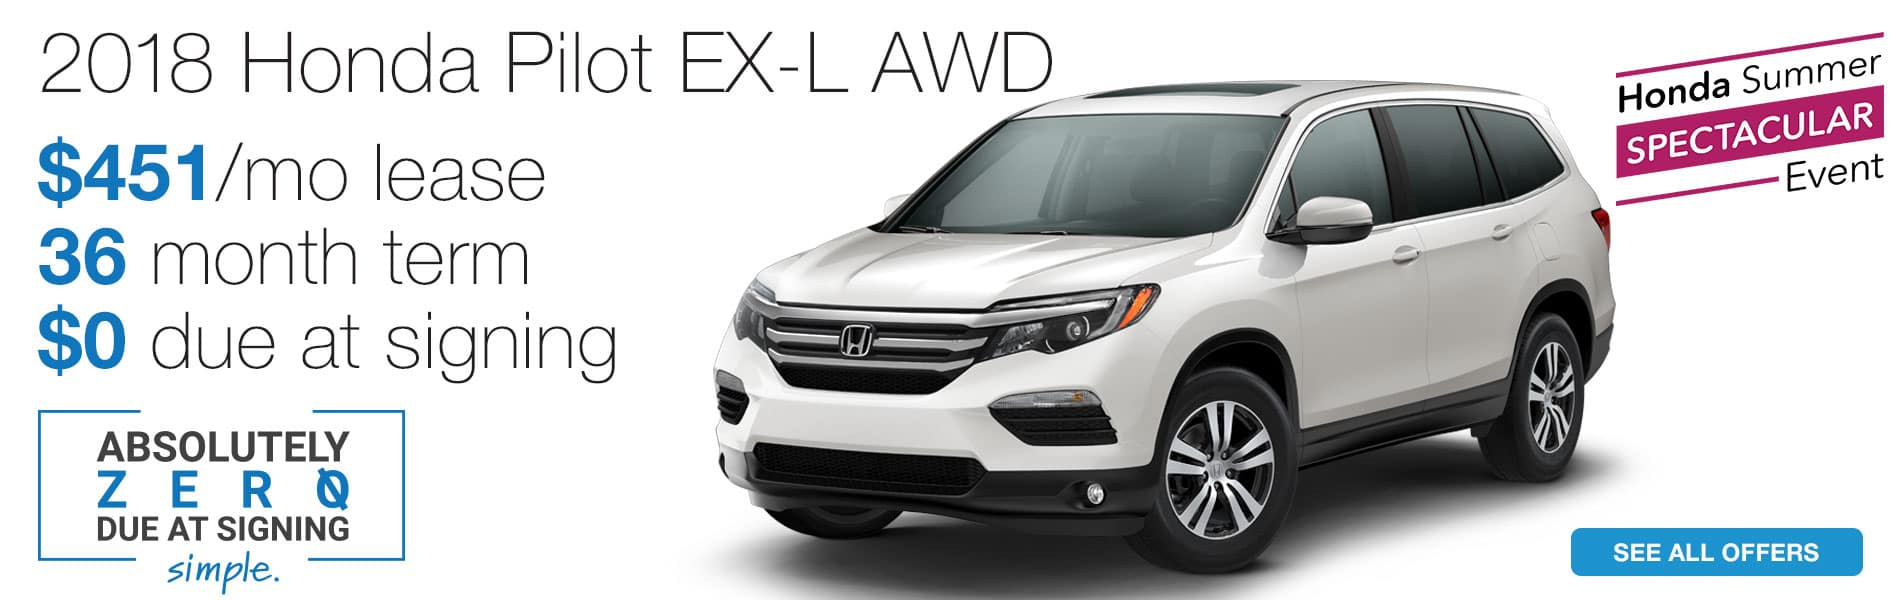 Lease a 2018 Honda Pilot EX-L for $451 per month with absolutely $0 due at signing